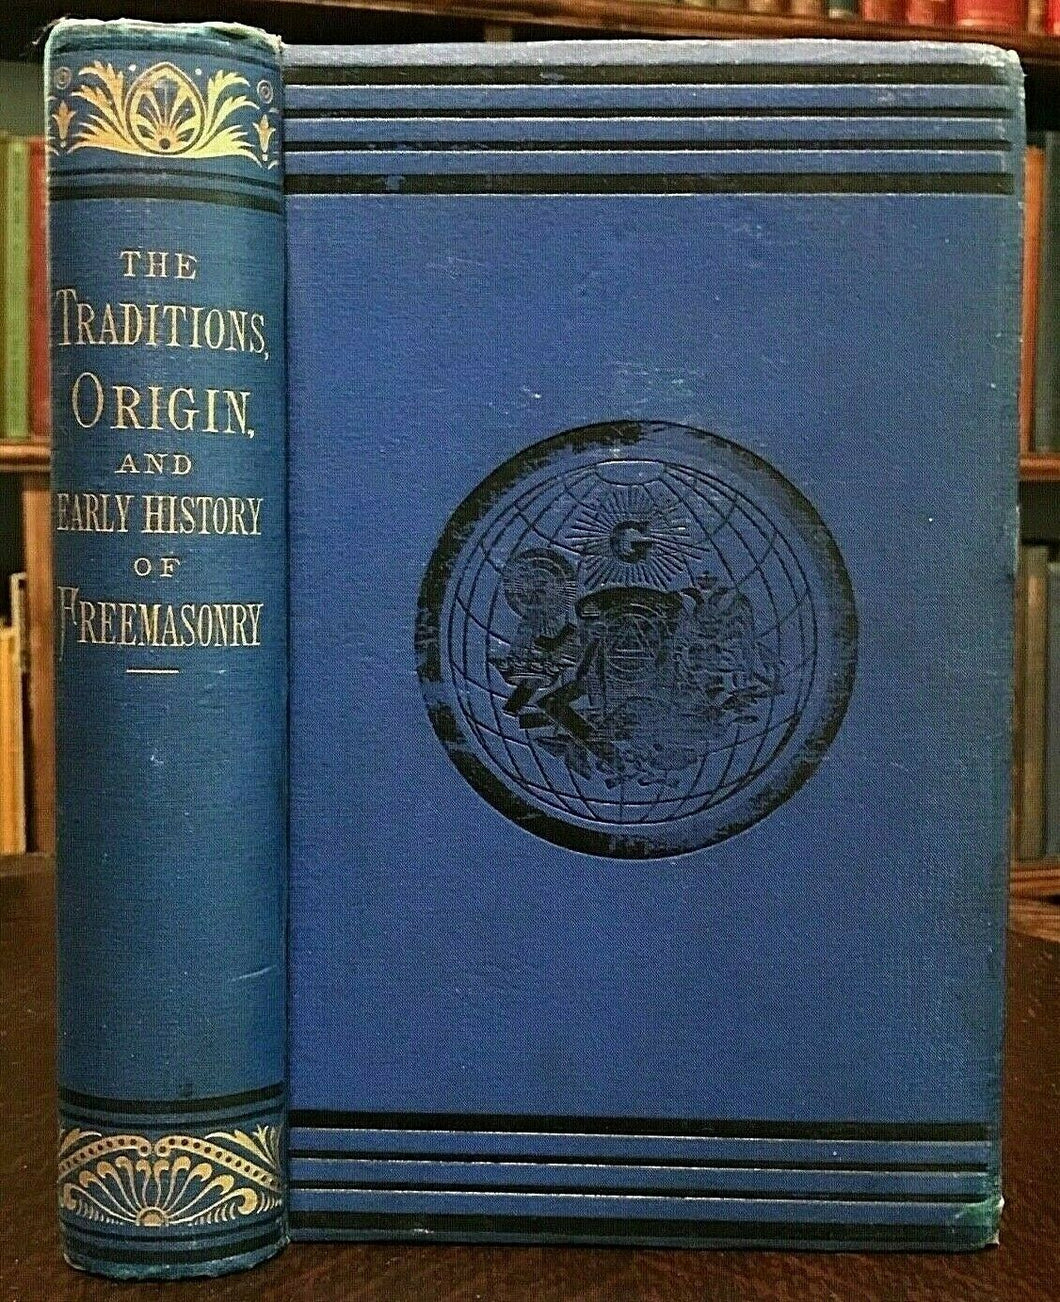 TRADITIONS, ORIGIN, EARLY HISTORY OF FREEMASONRY, 1885 MASONRY ANCIENT MYSTERIES